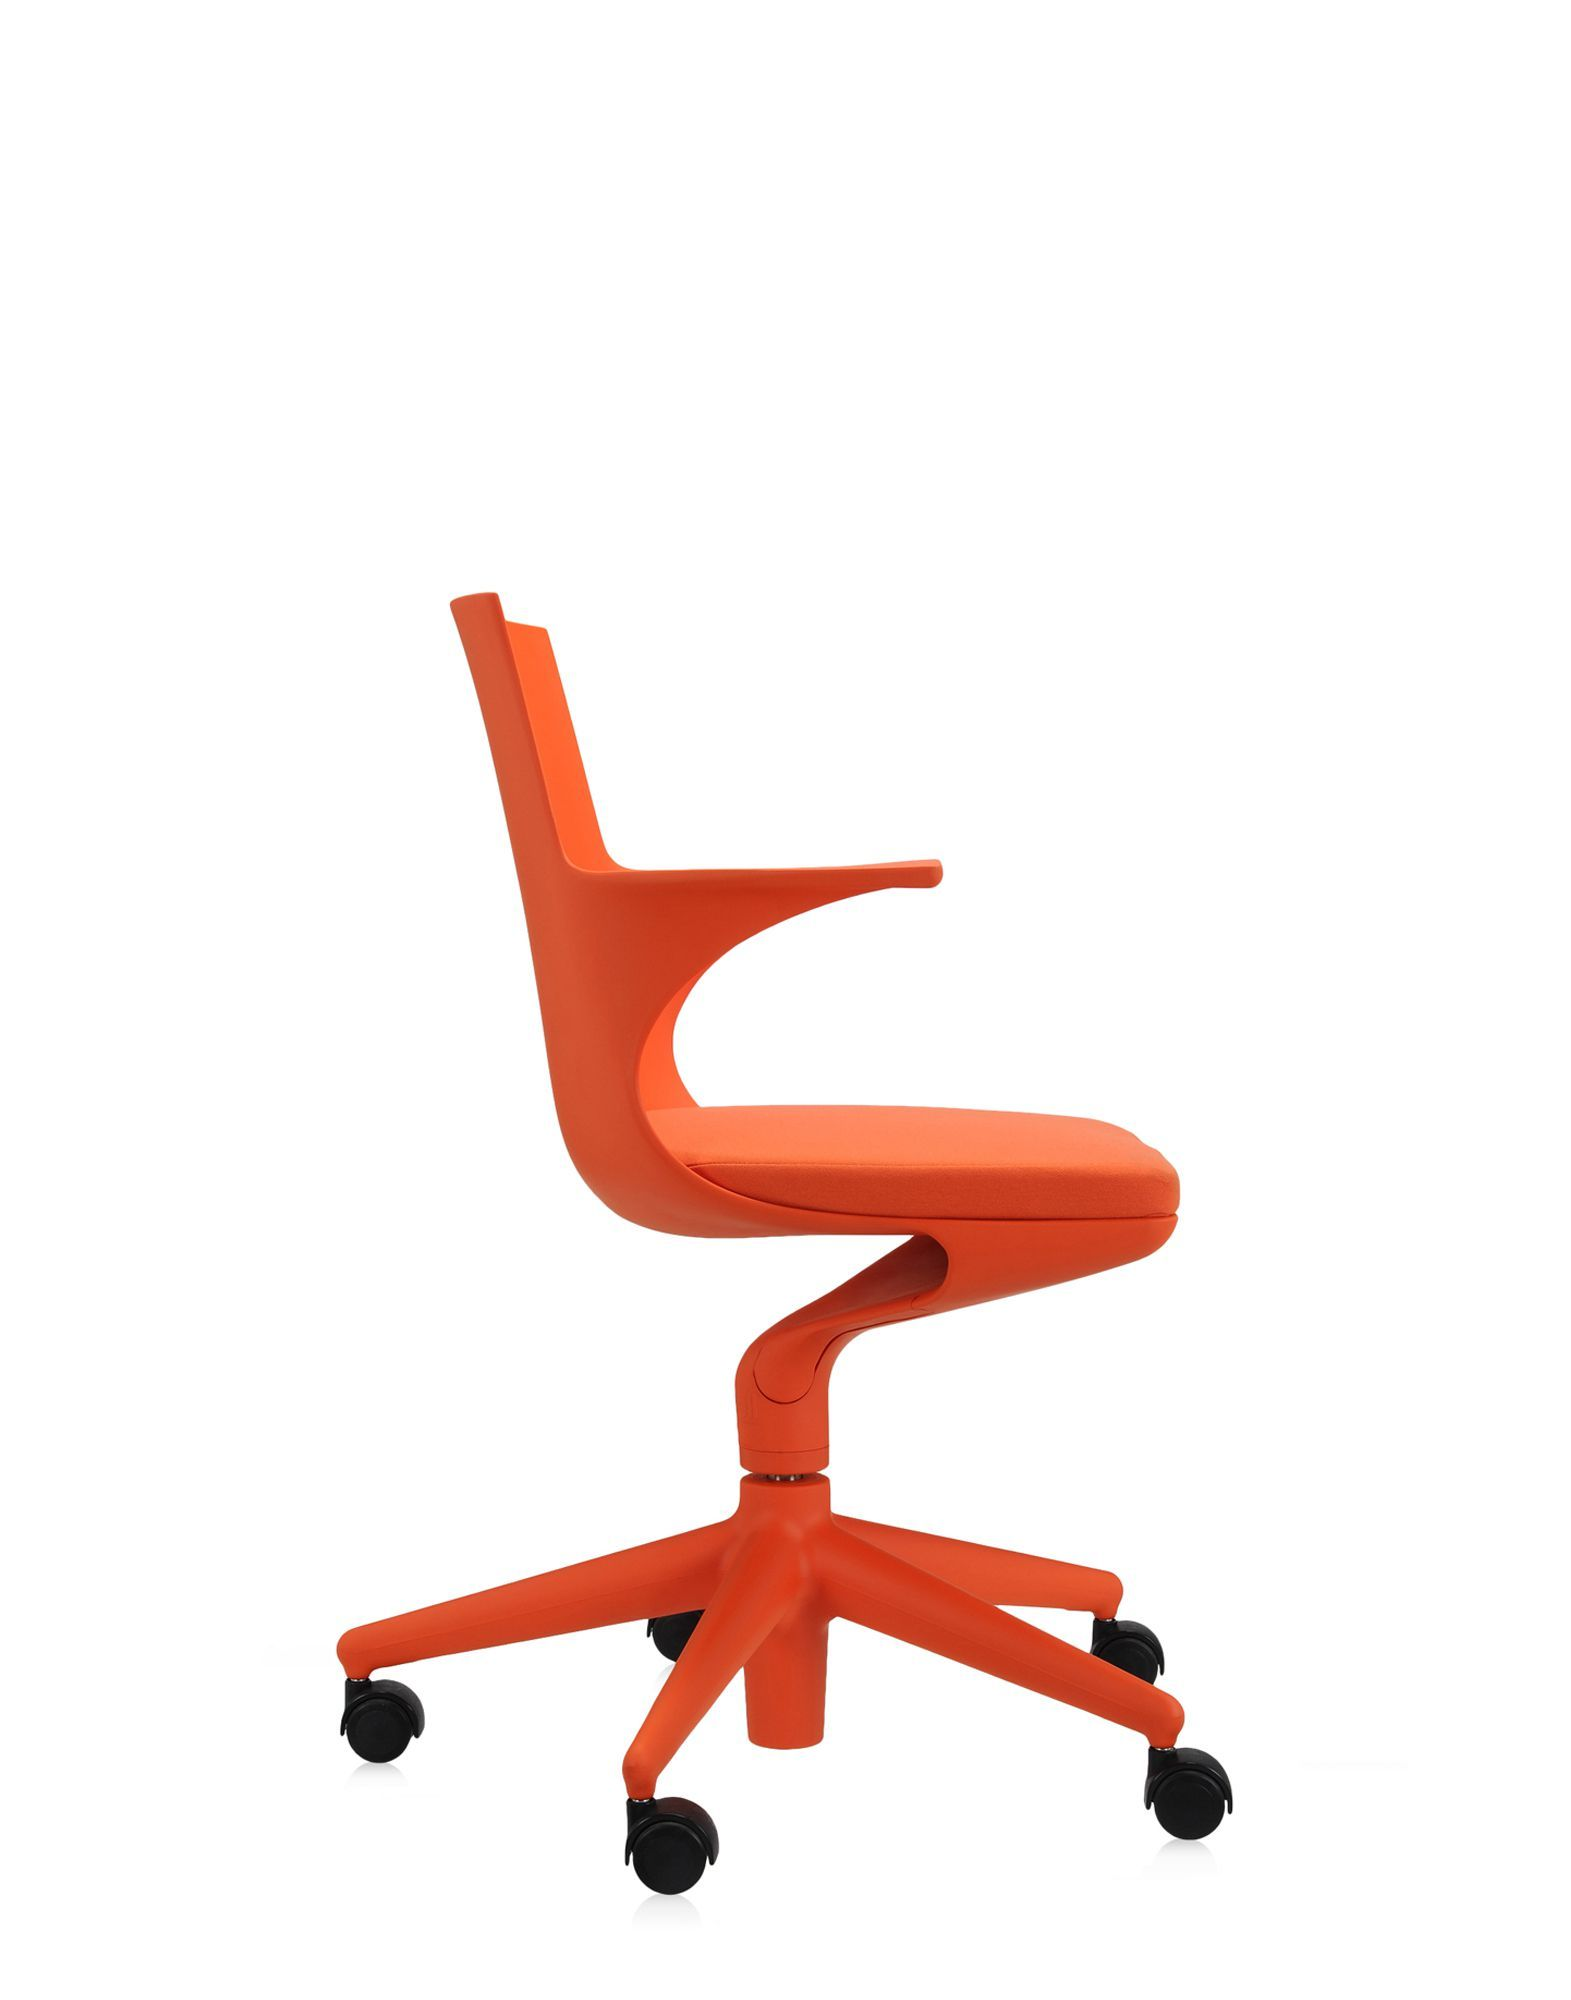 Image result for kartell office chair spoon chair orange